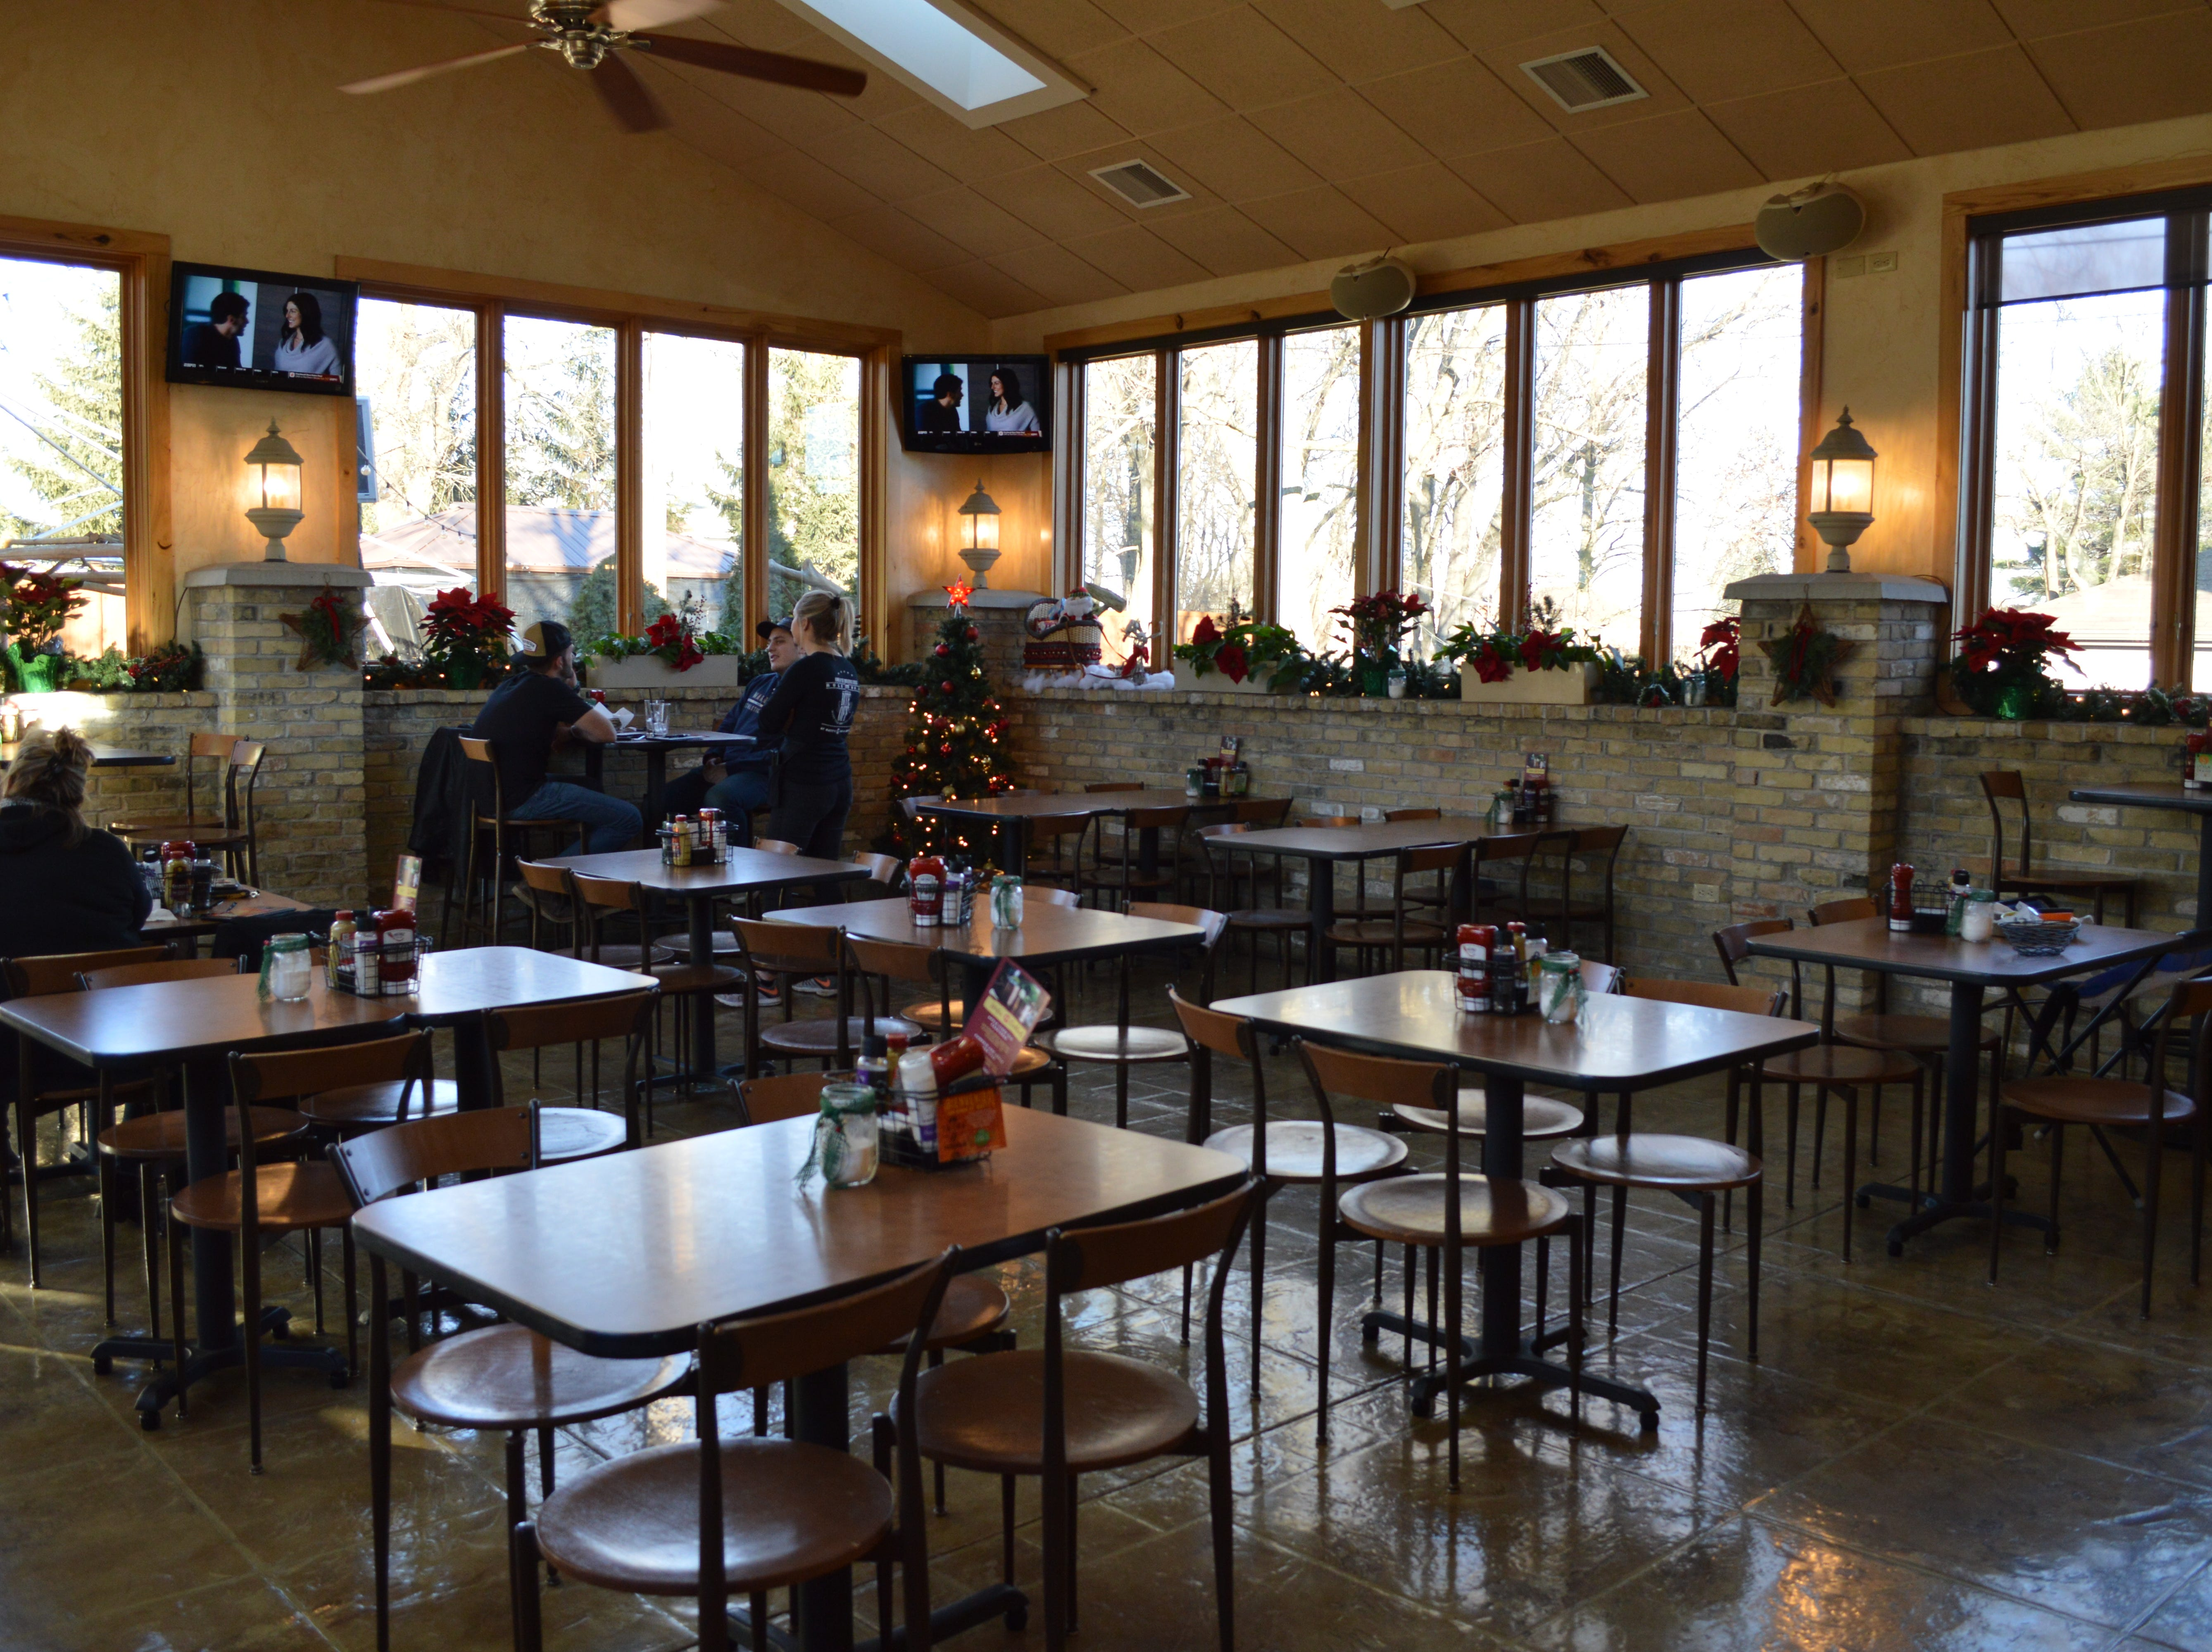 An open-air Cream City Brick beer garden was transformed into this four-seasons room in 2010.